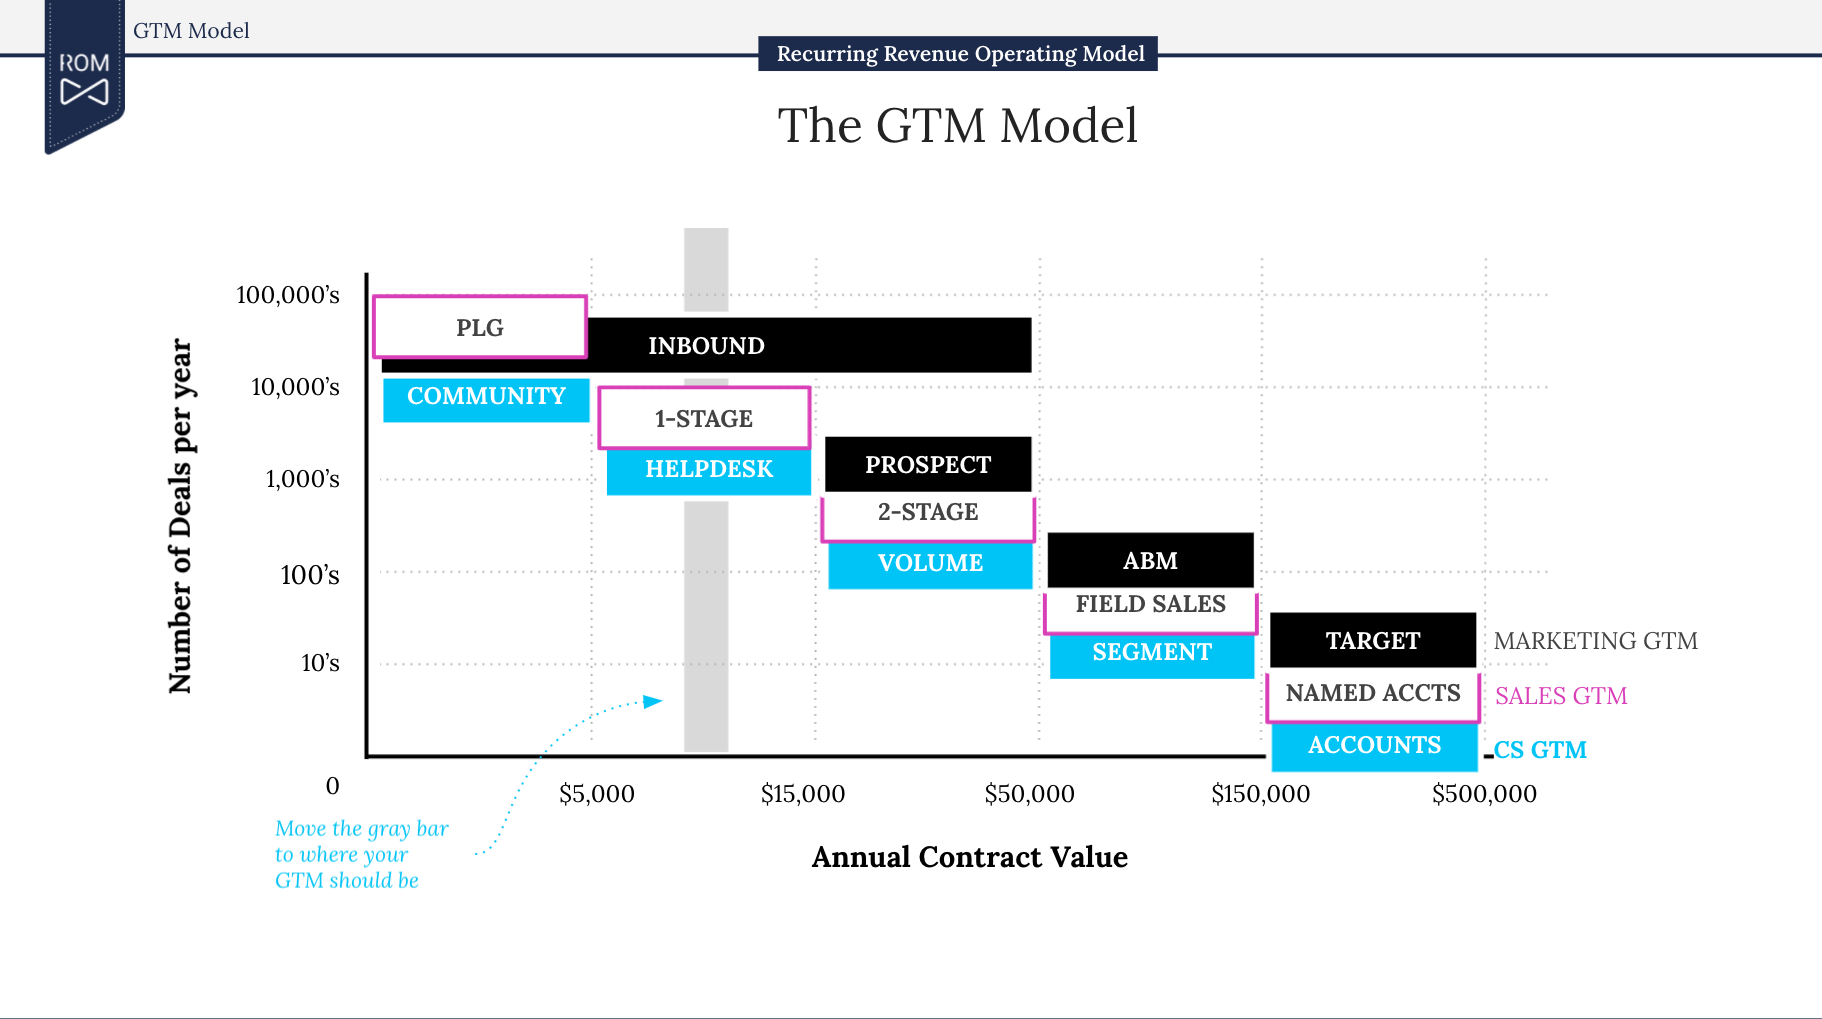 Template of the ROM GTM Model